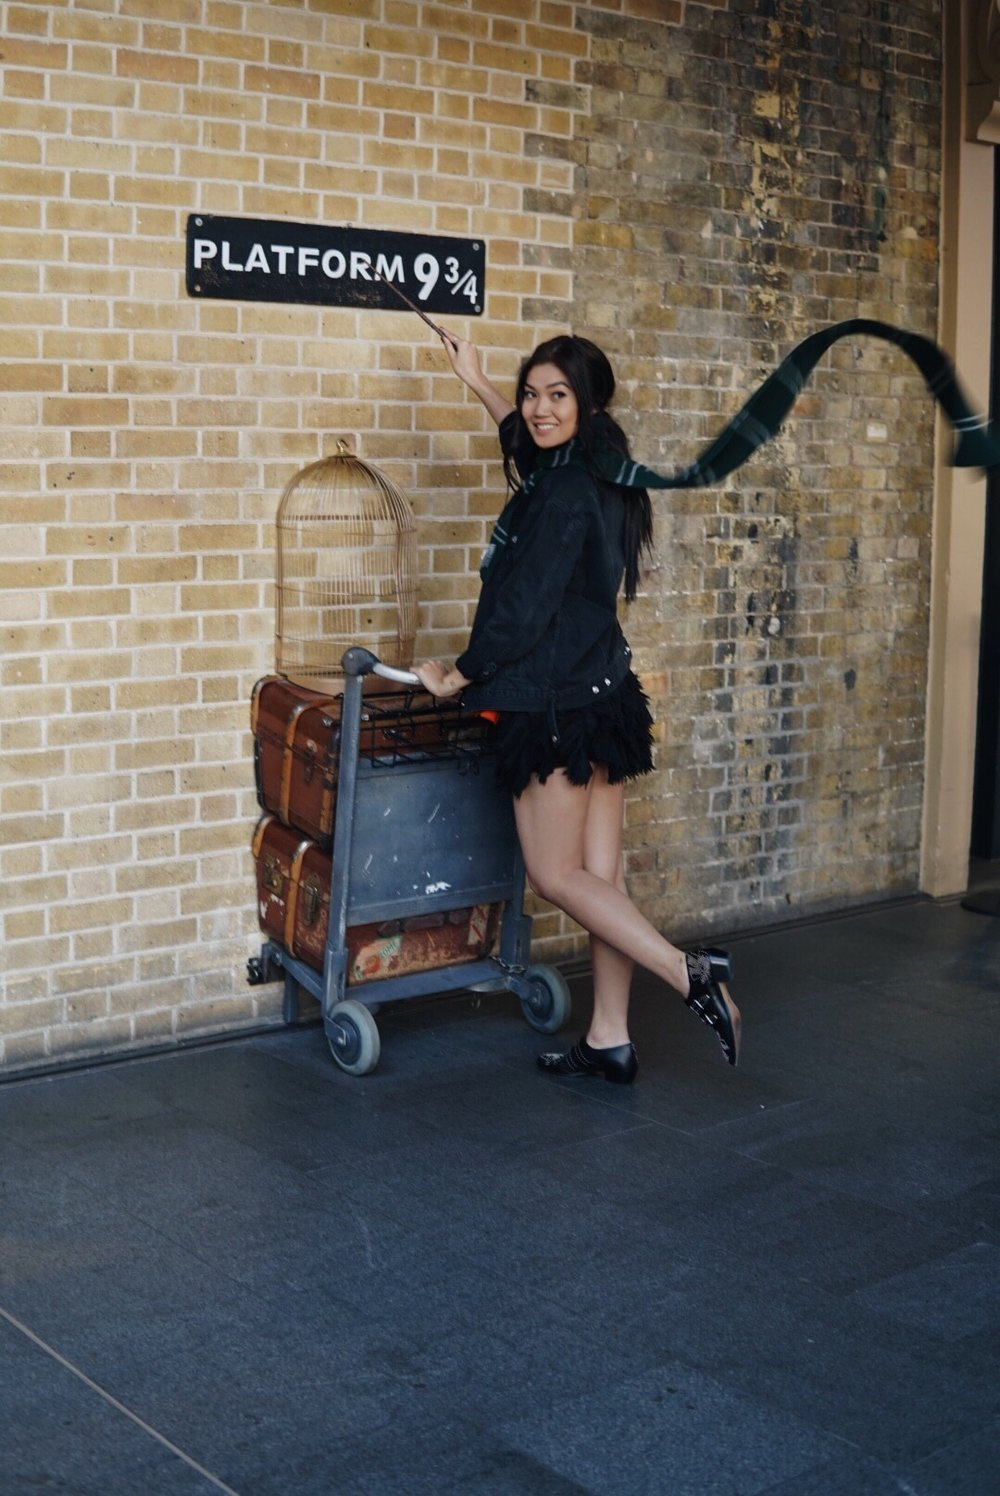 The next day, my one requested stop was fulfilled! Platform 9 3/4, because I am quite the HP fan! We woke up early to get there (Tee was the only who made it on time) and get the famous photo and shop the gift shop!